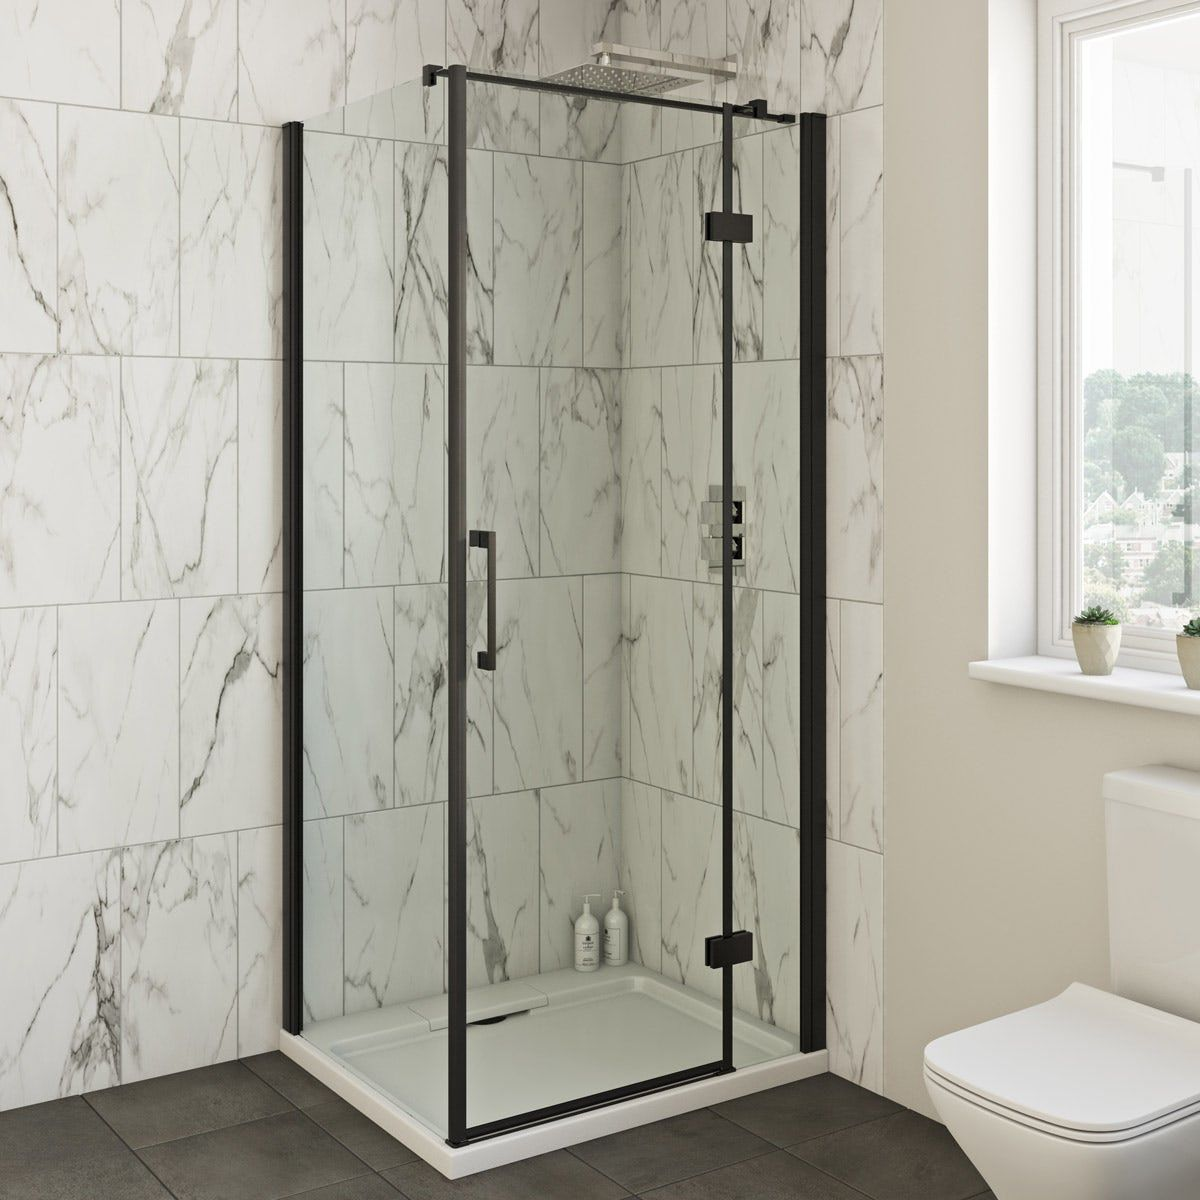 Mode Cooper 8mm Black Hinged Shower Enclosure Shower Enclosure Rectangular Shower Enclosures Quadrant Shower